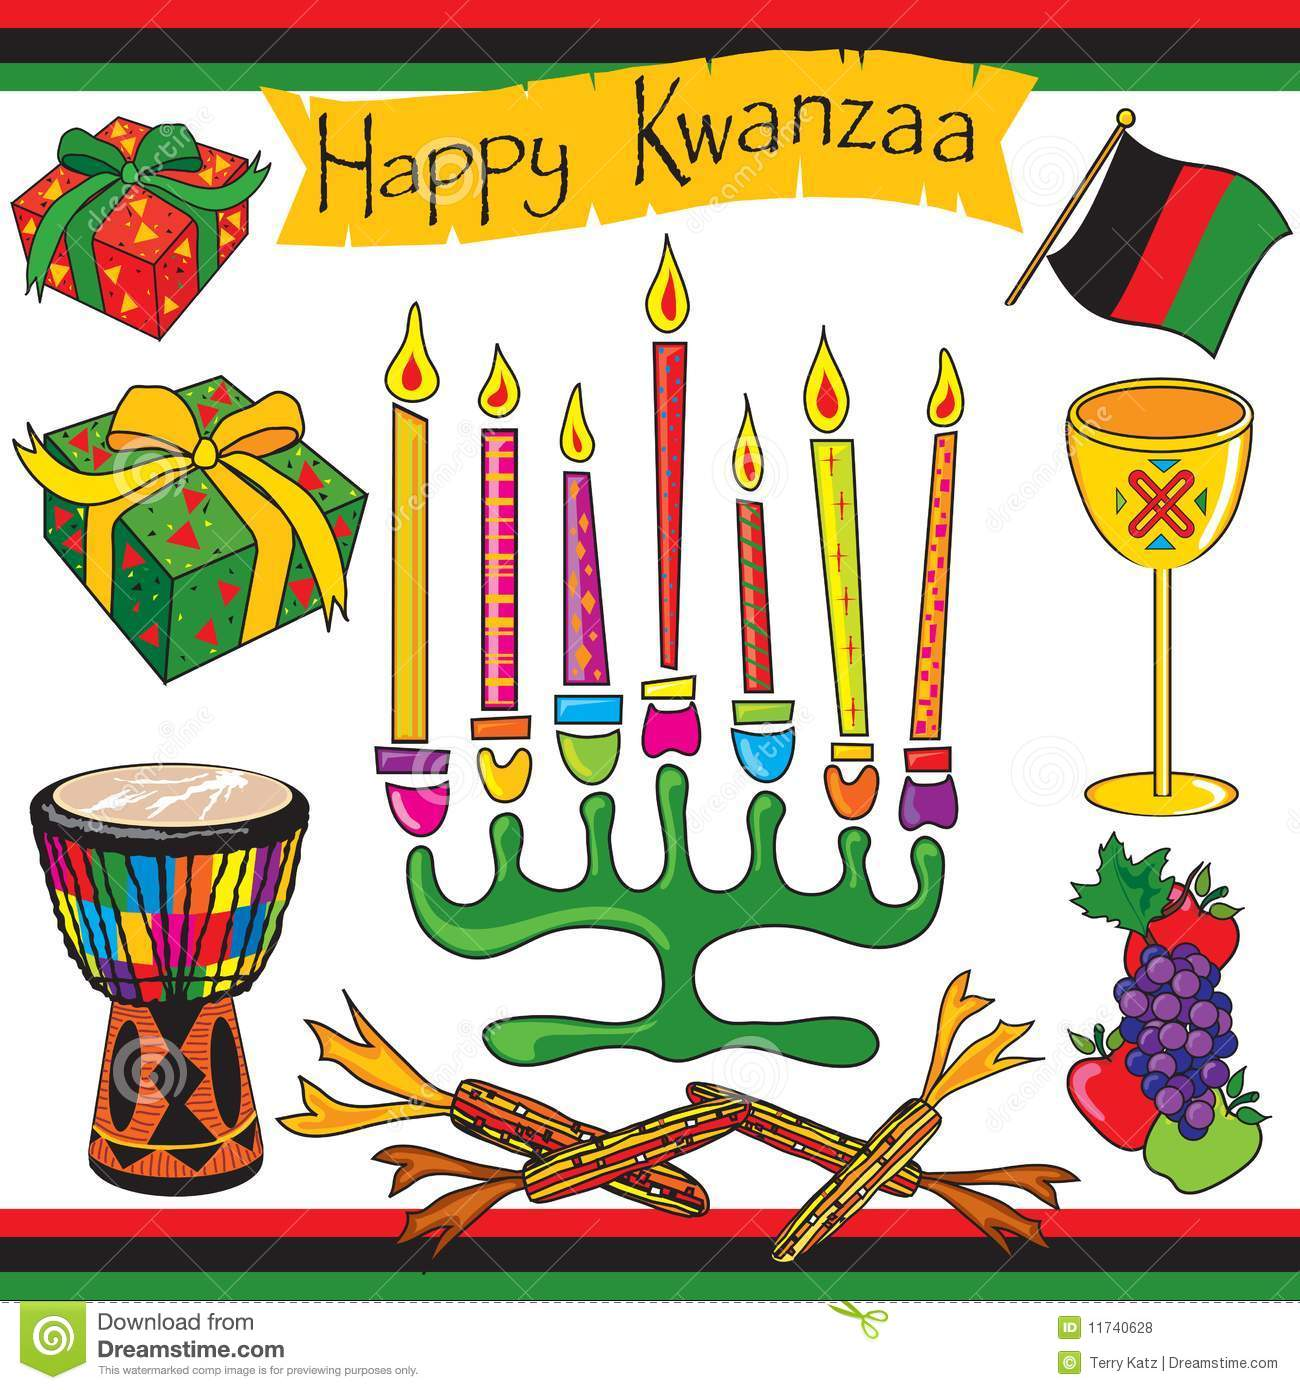 Related Keywords & Suggestions for kwanzaa clip art